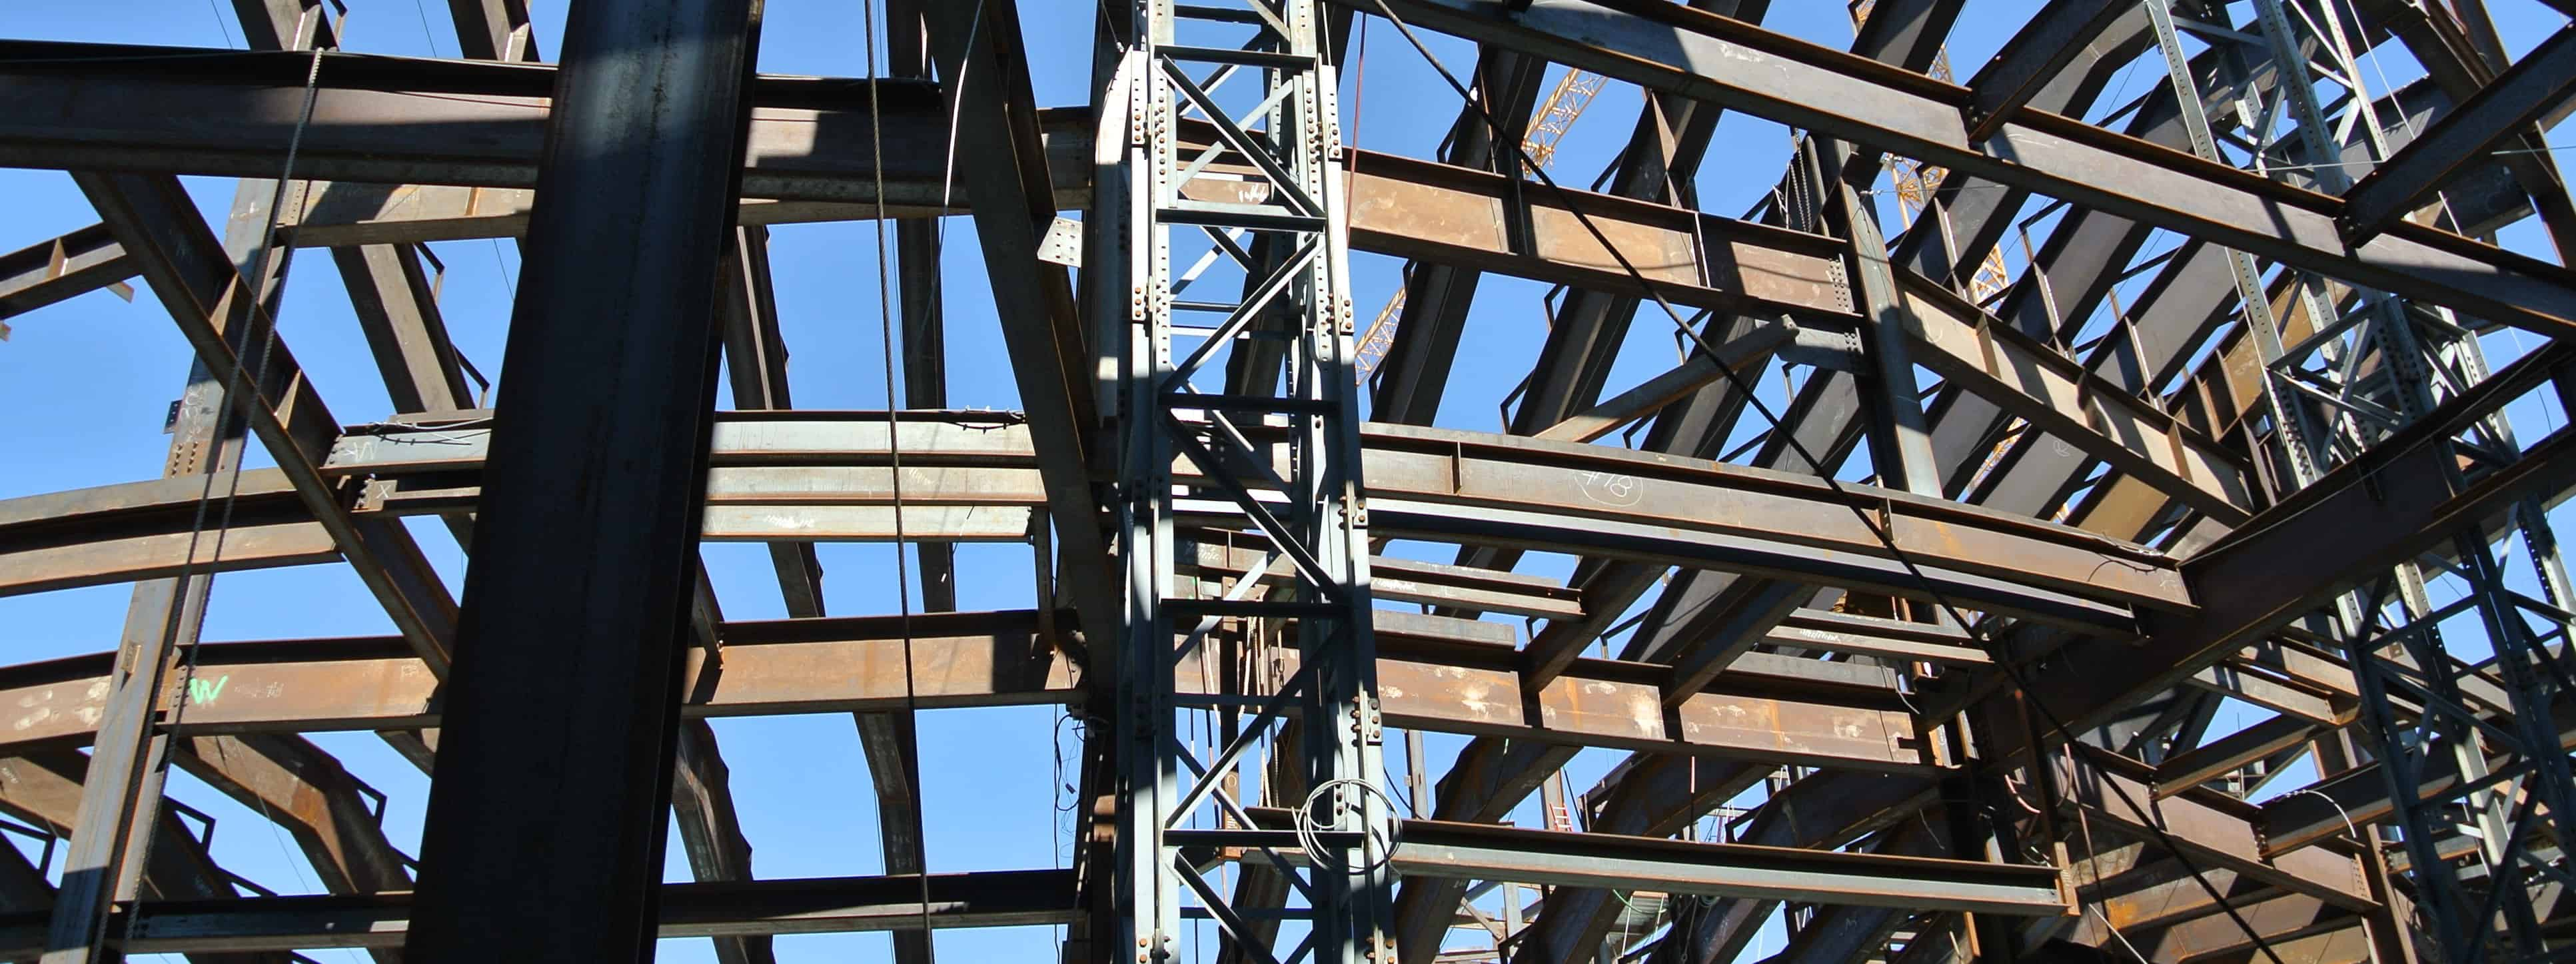 Steel Erection Guidelines AISC Releases Certification Standard for Steel Fabrication & Erection